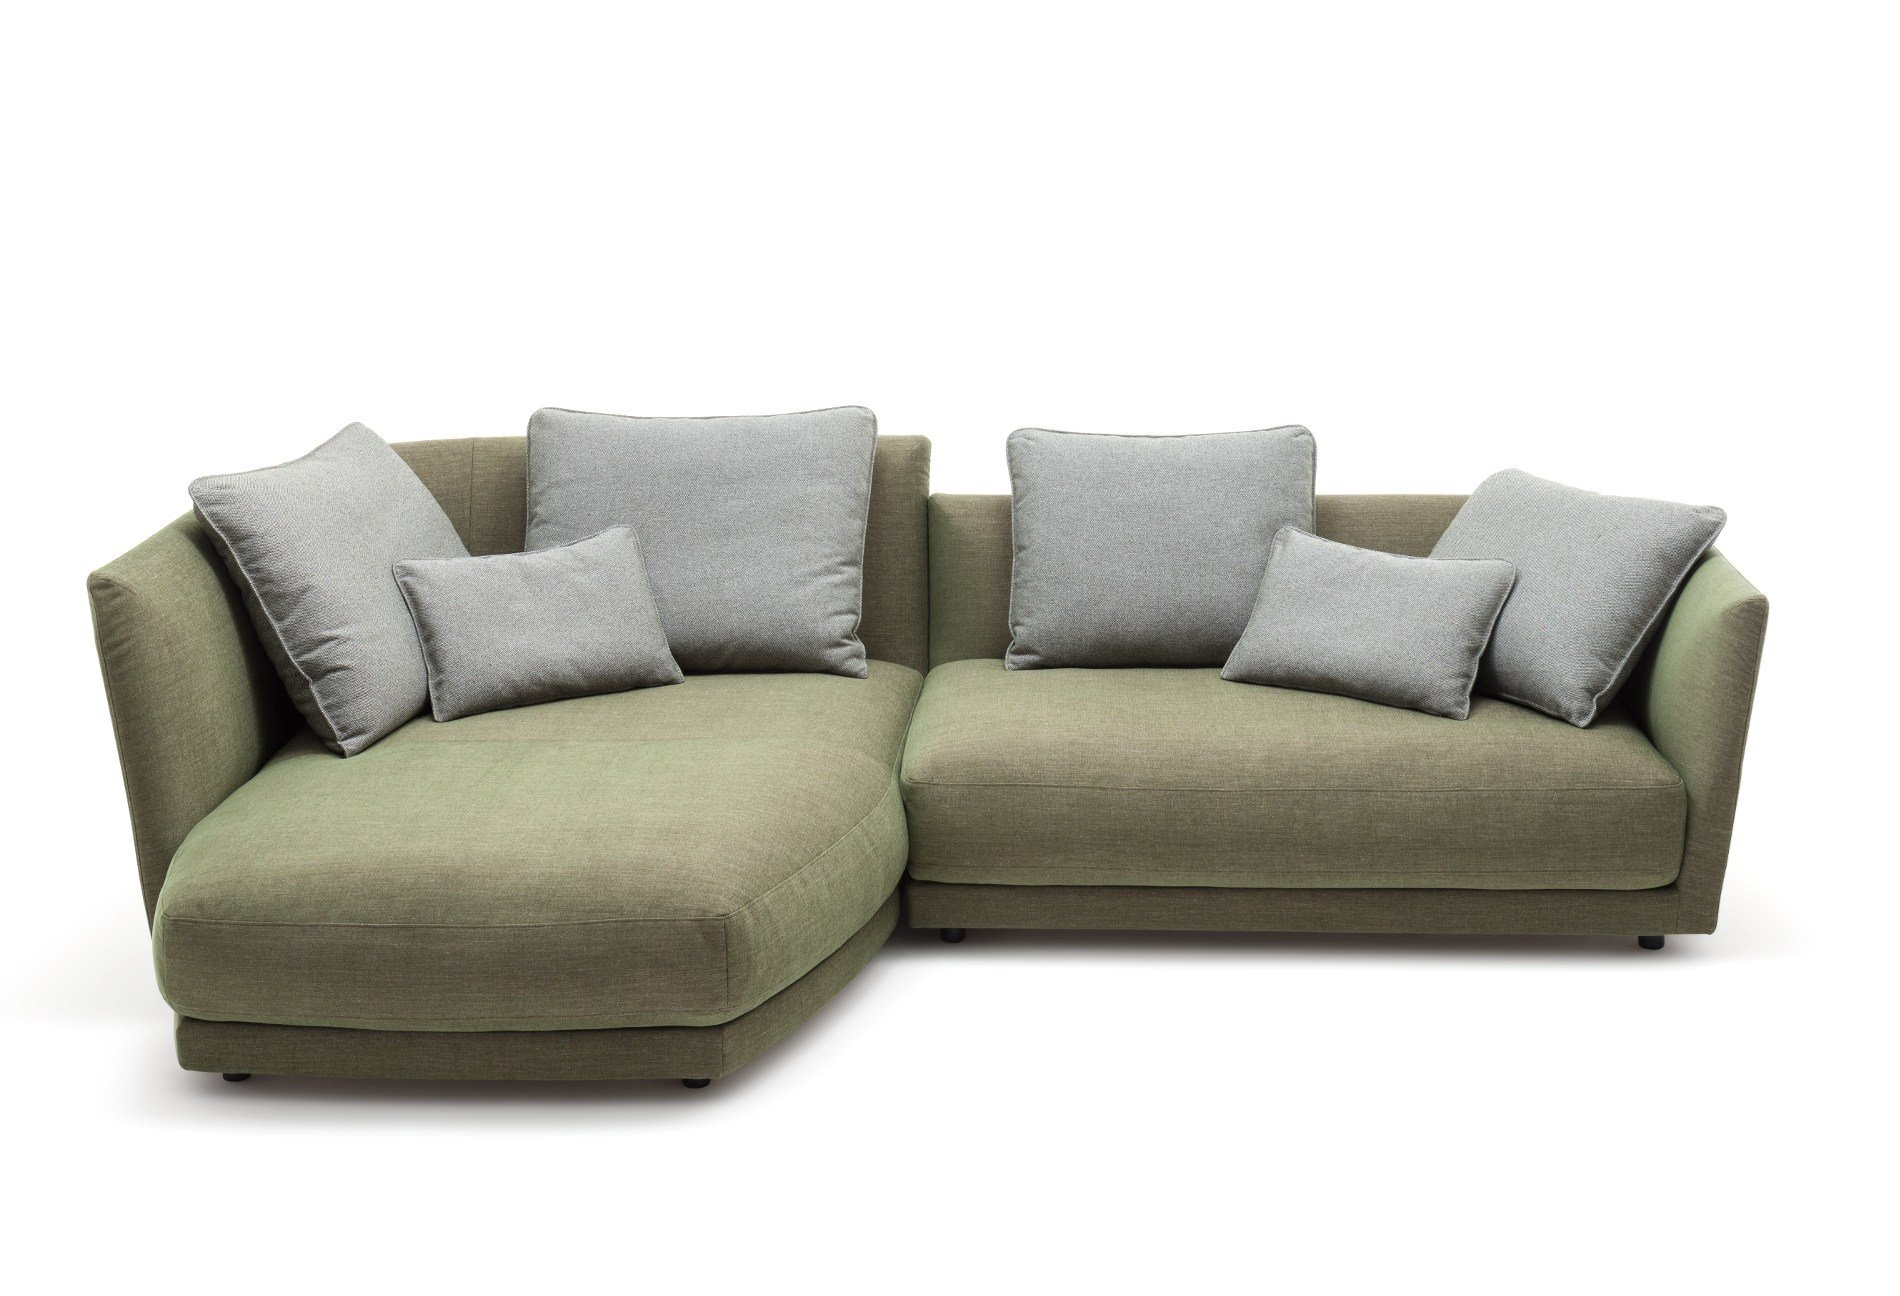 Tondo Modular Sofa By Rolf Benz Design Sebastian Labs